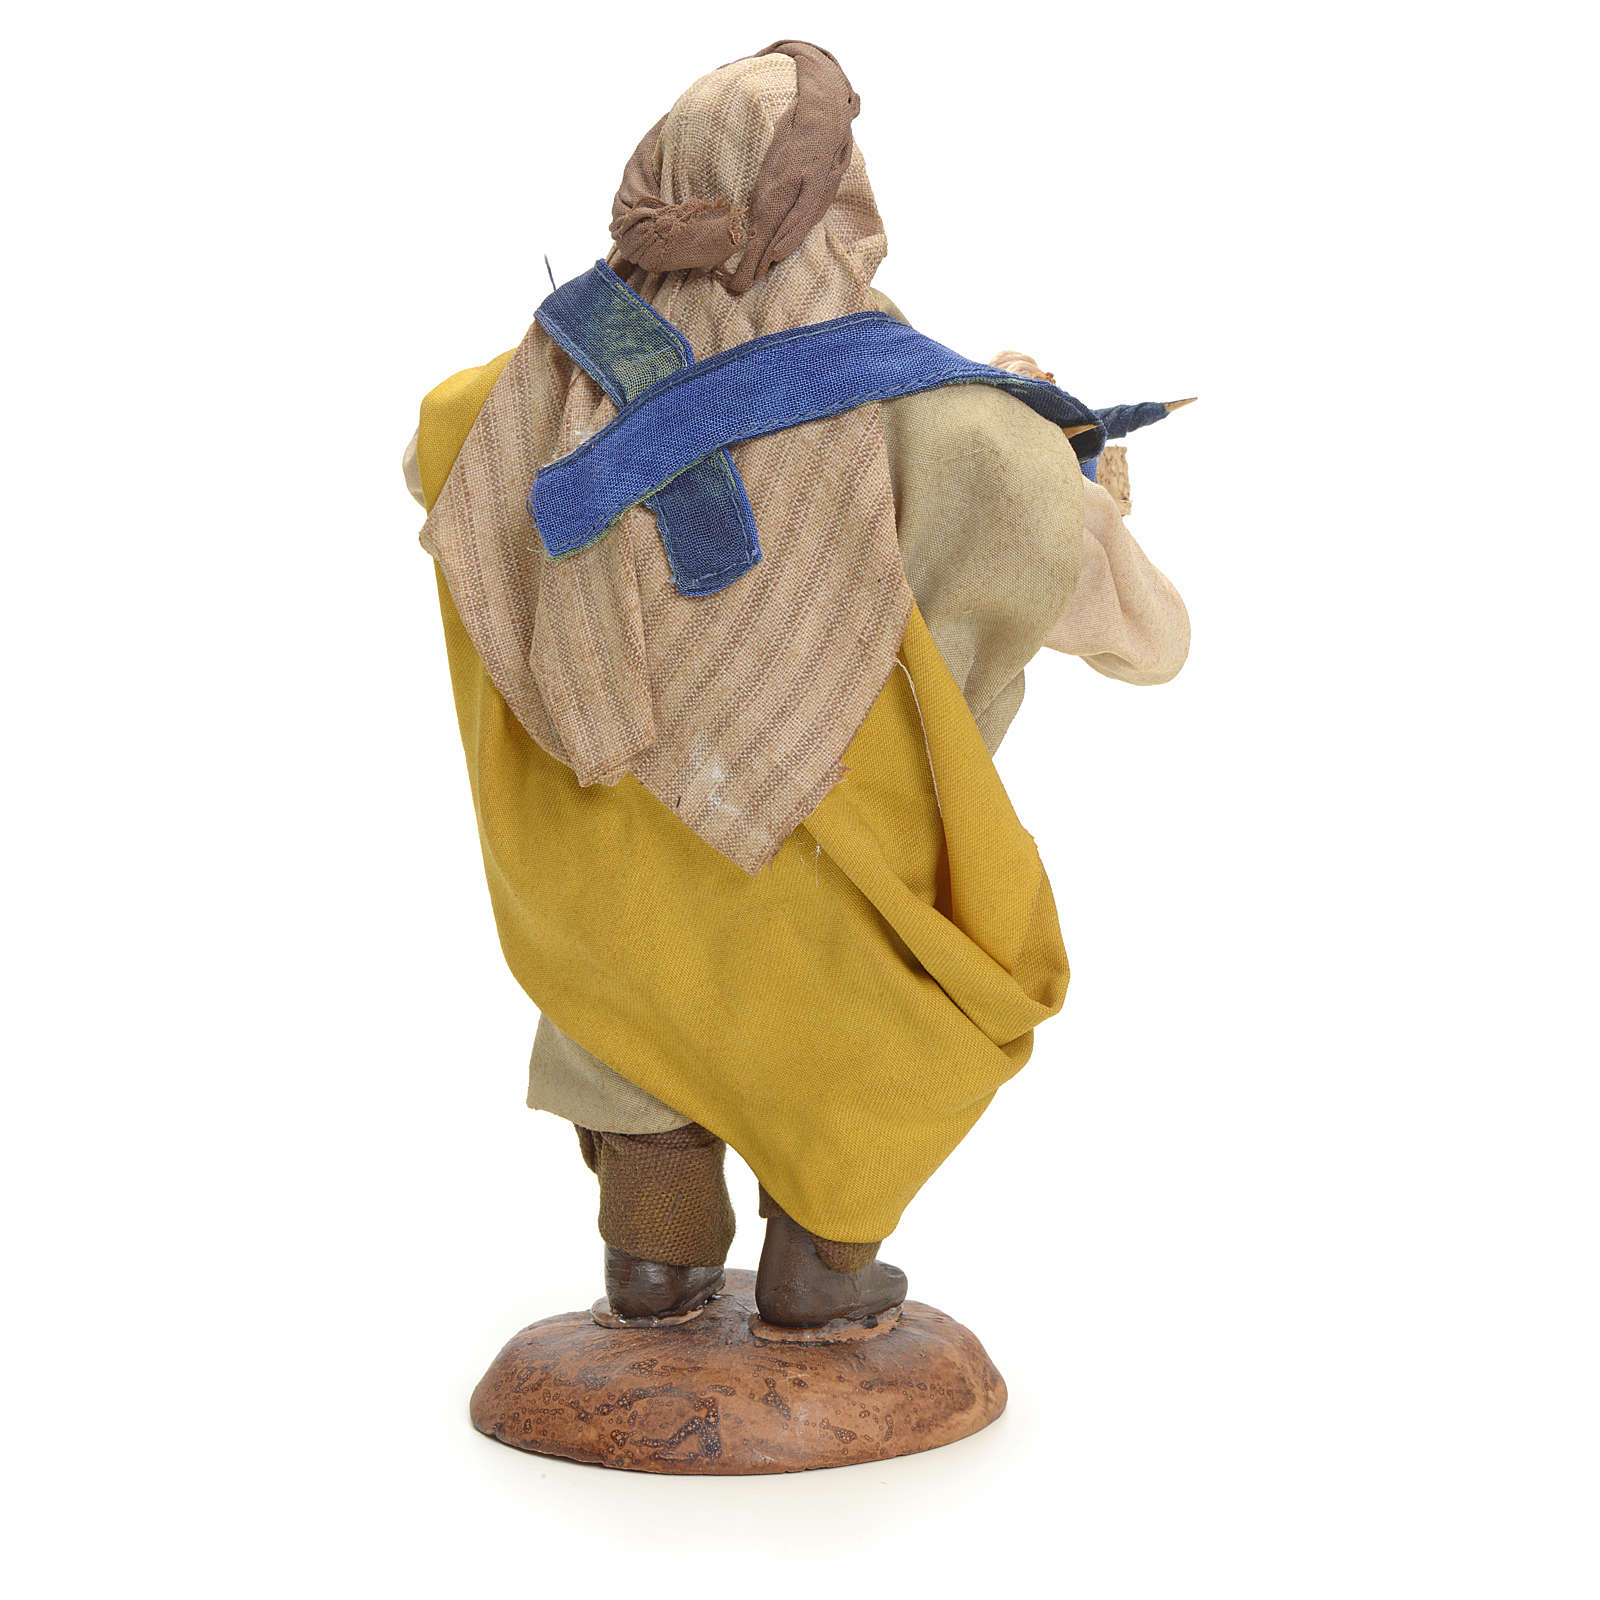 Neapolitan Nativity figurine, umbrella seller, 18 cm 4